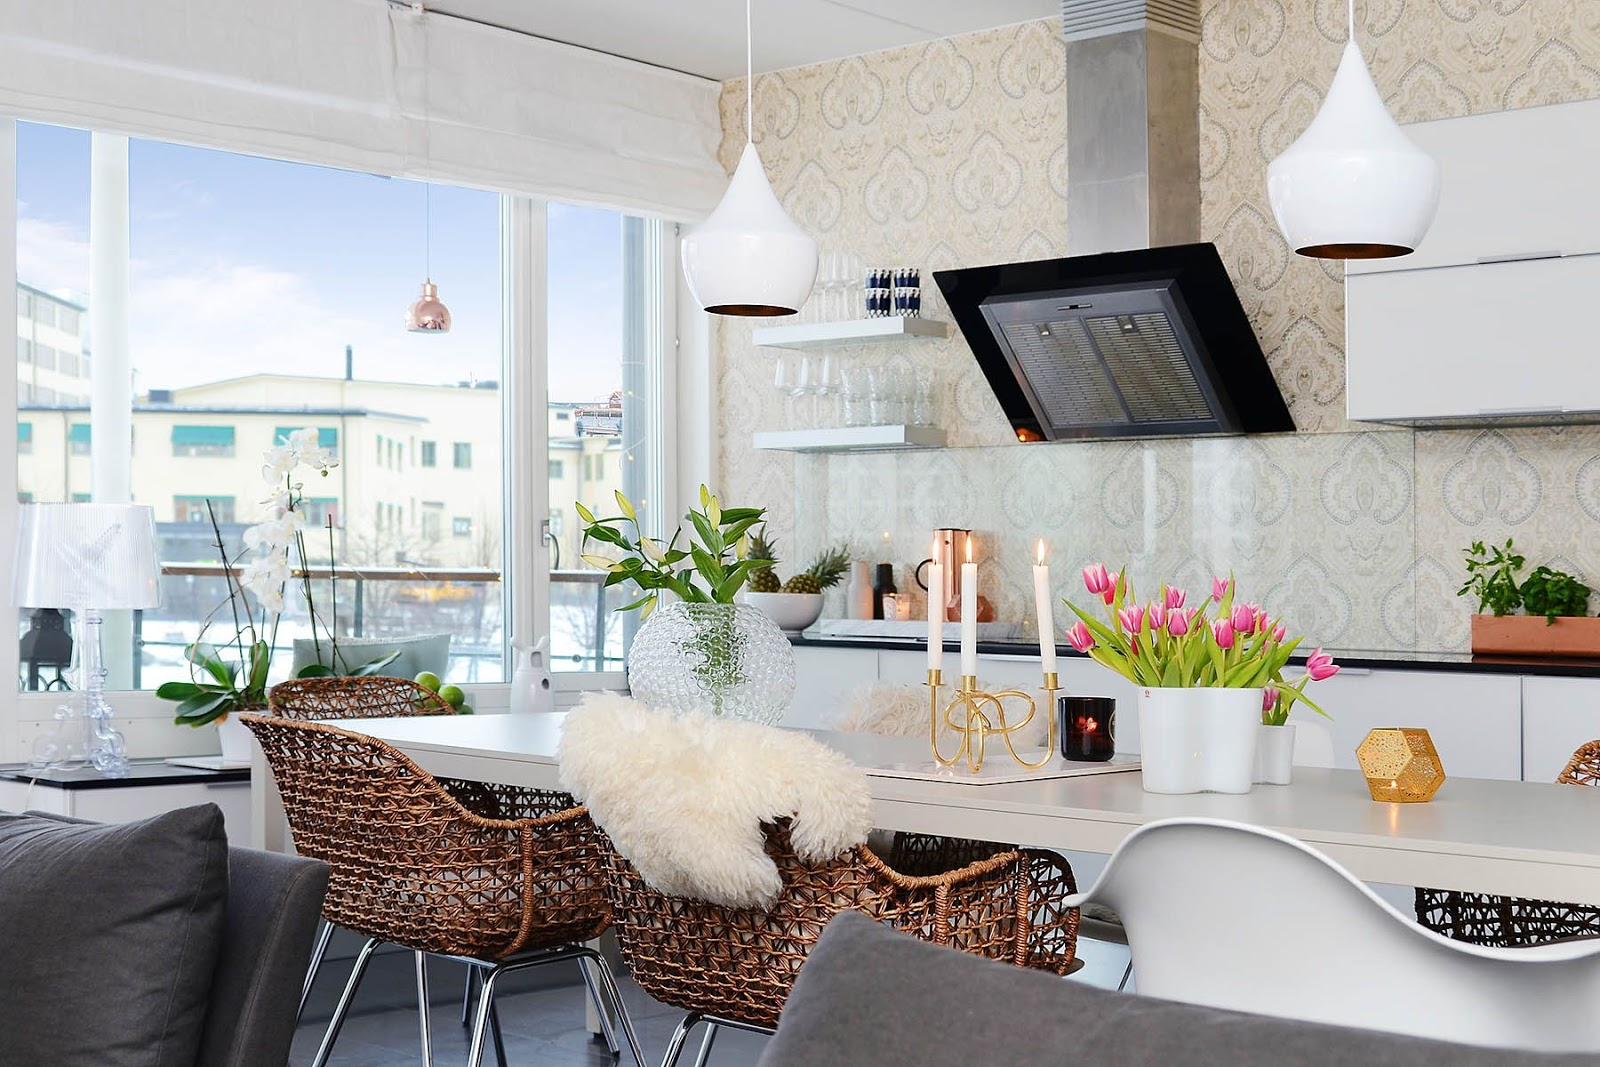 luxe dining room with woven basket bar seats